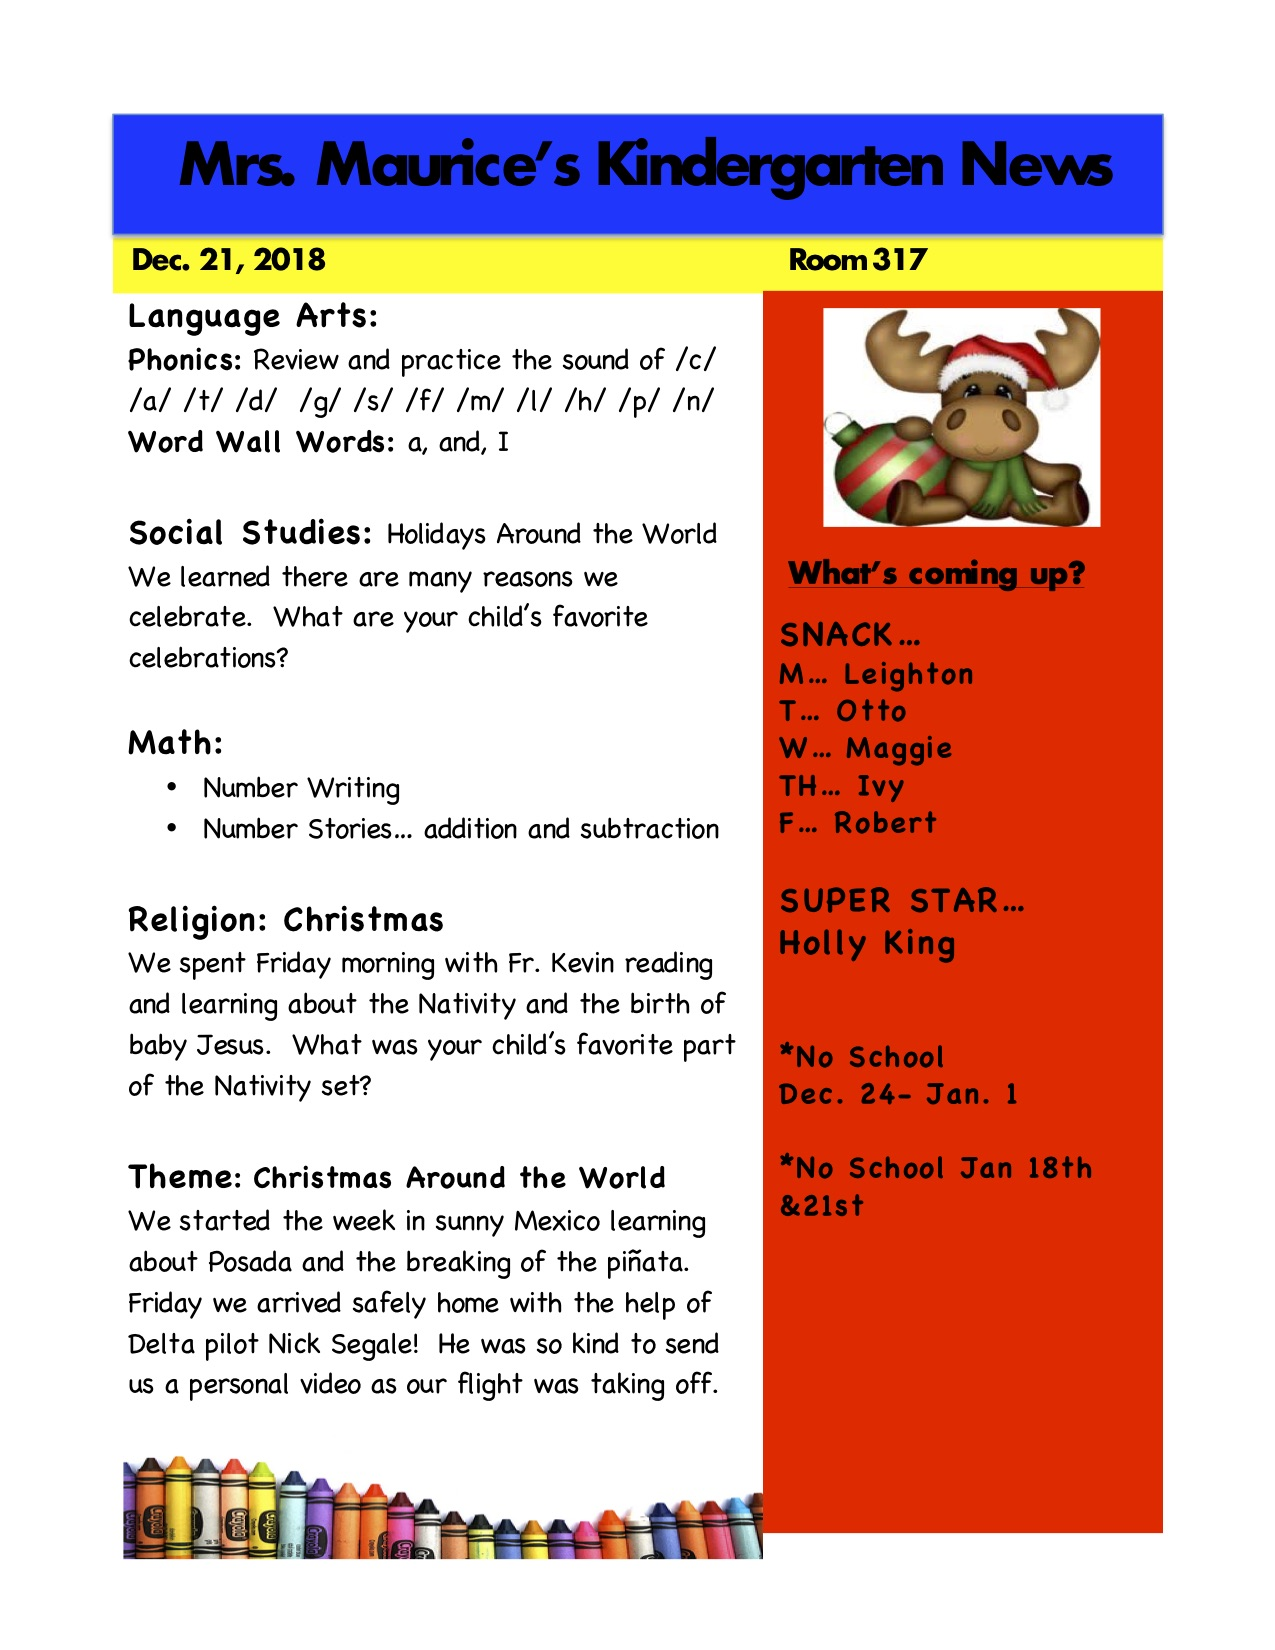 Kindergarten News Dec. 21.jpg